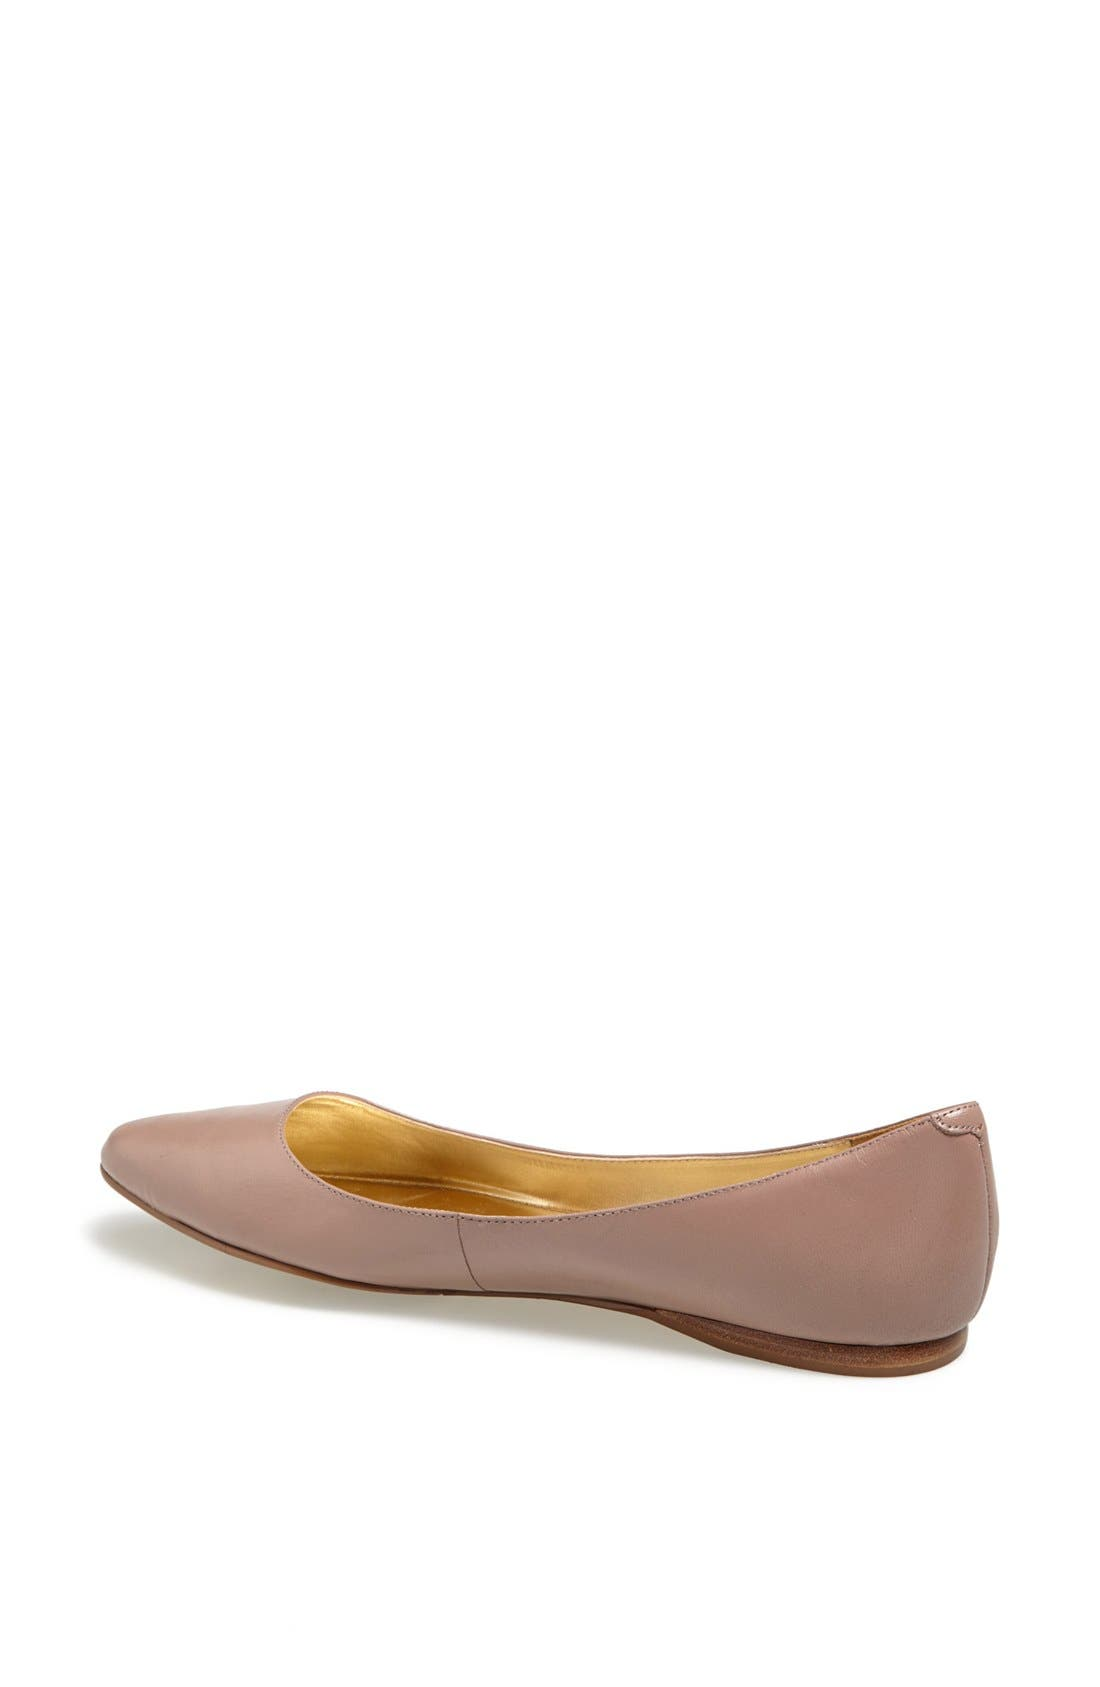 Alternate Image 2  - Nine West 'Speakup' Flat